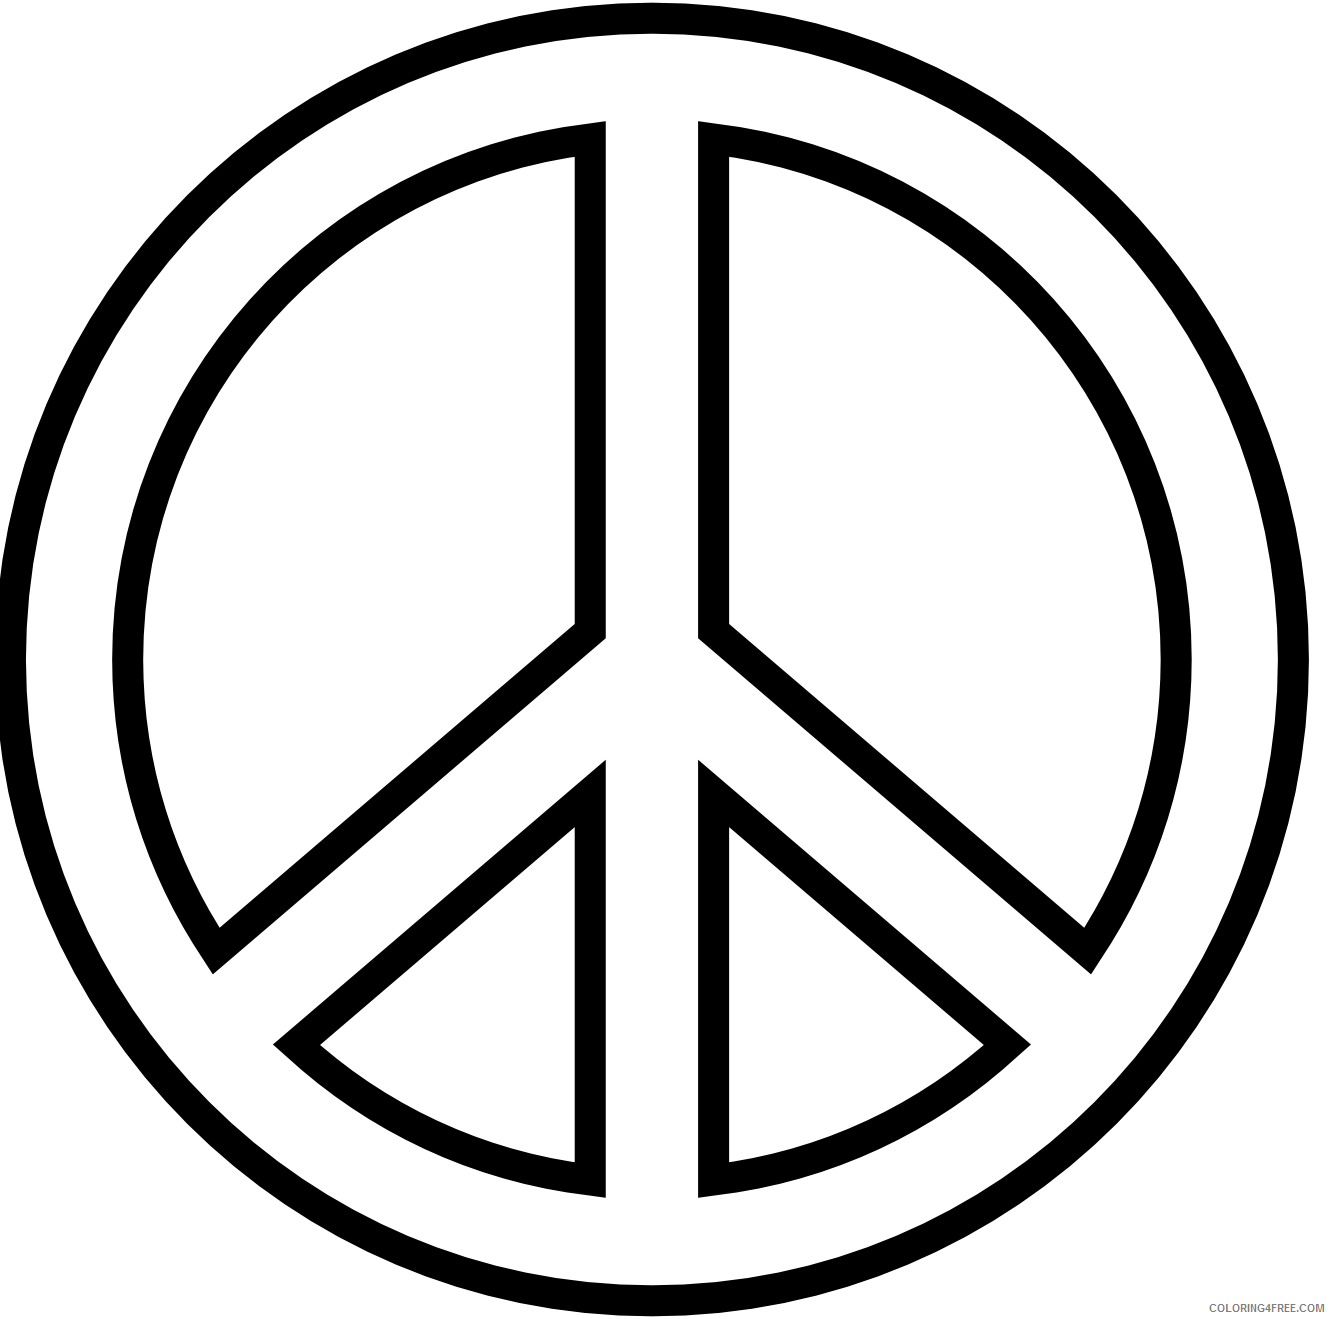 easy peace sign coloring pages Coloring4free